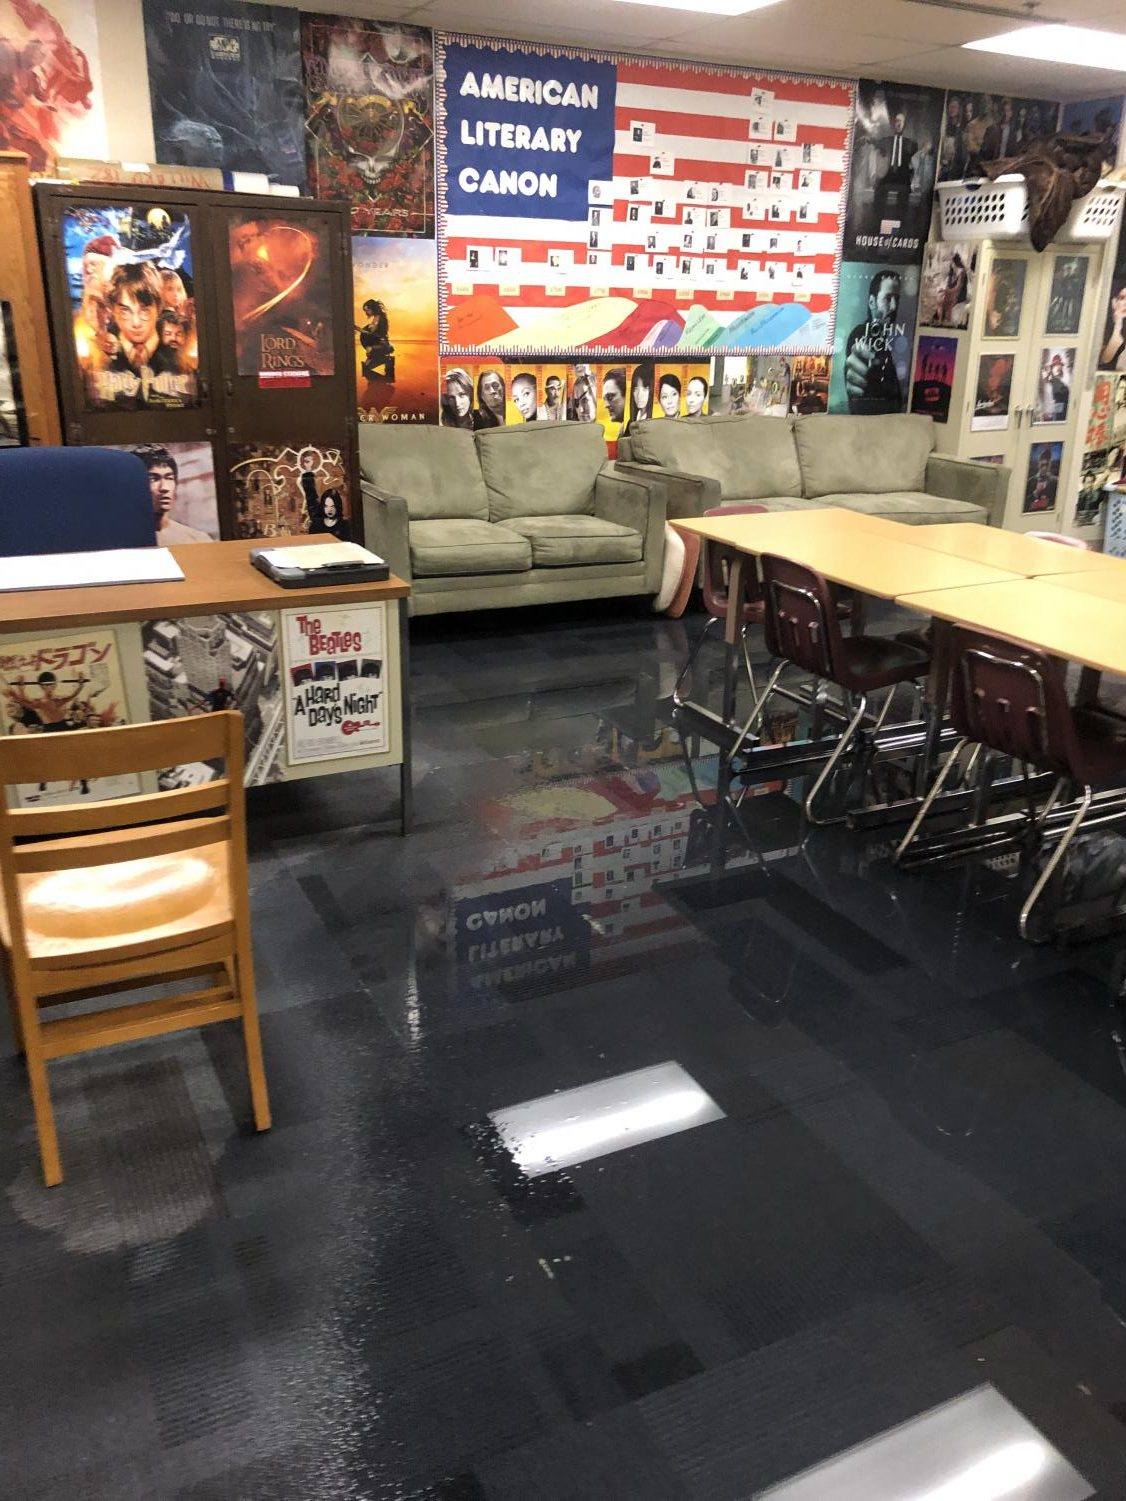 Water+soaks+a+portion+of+the+floor+in+Room+182%2C+Aug.+17.+Classes+in+Room+182+will+be+relocated+to+the+Writing+Center+in+Room+157.